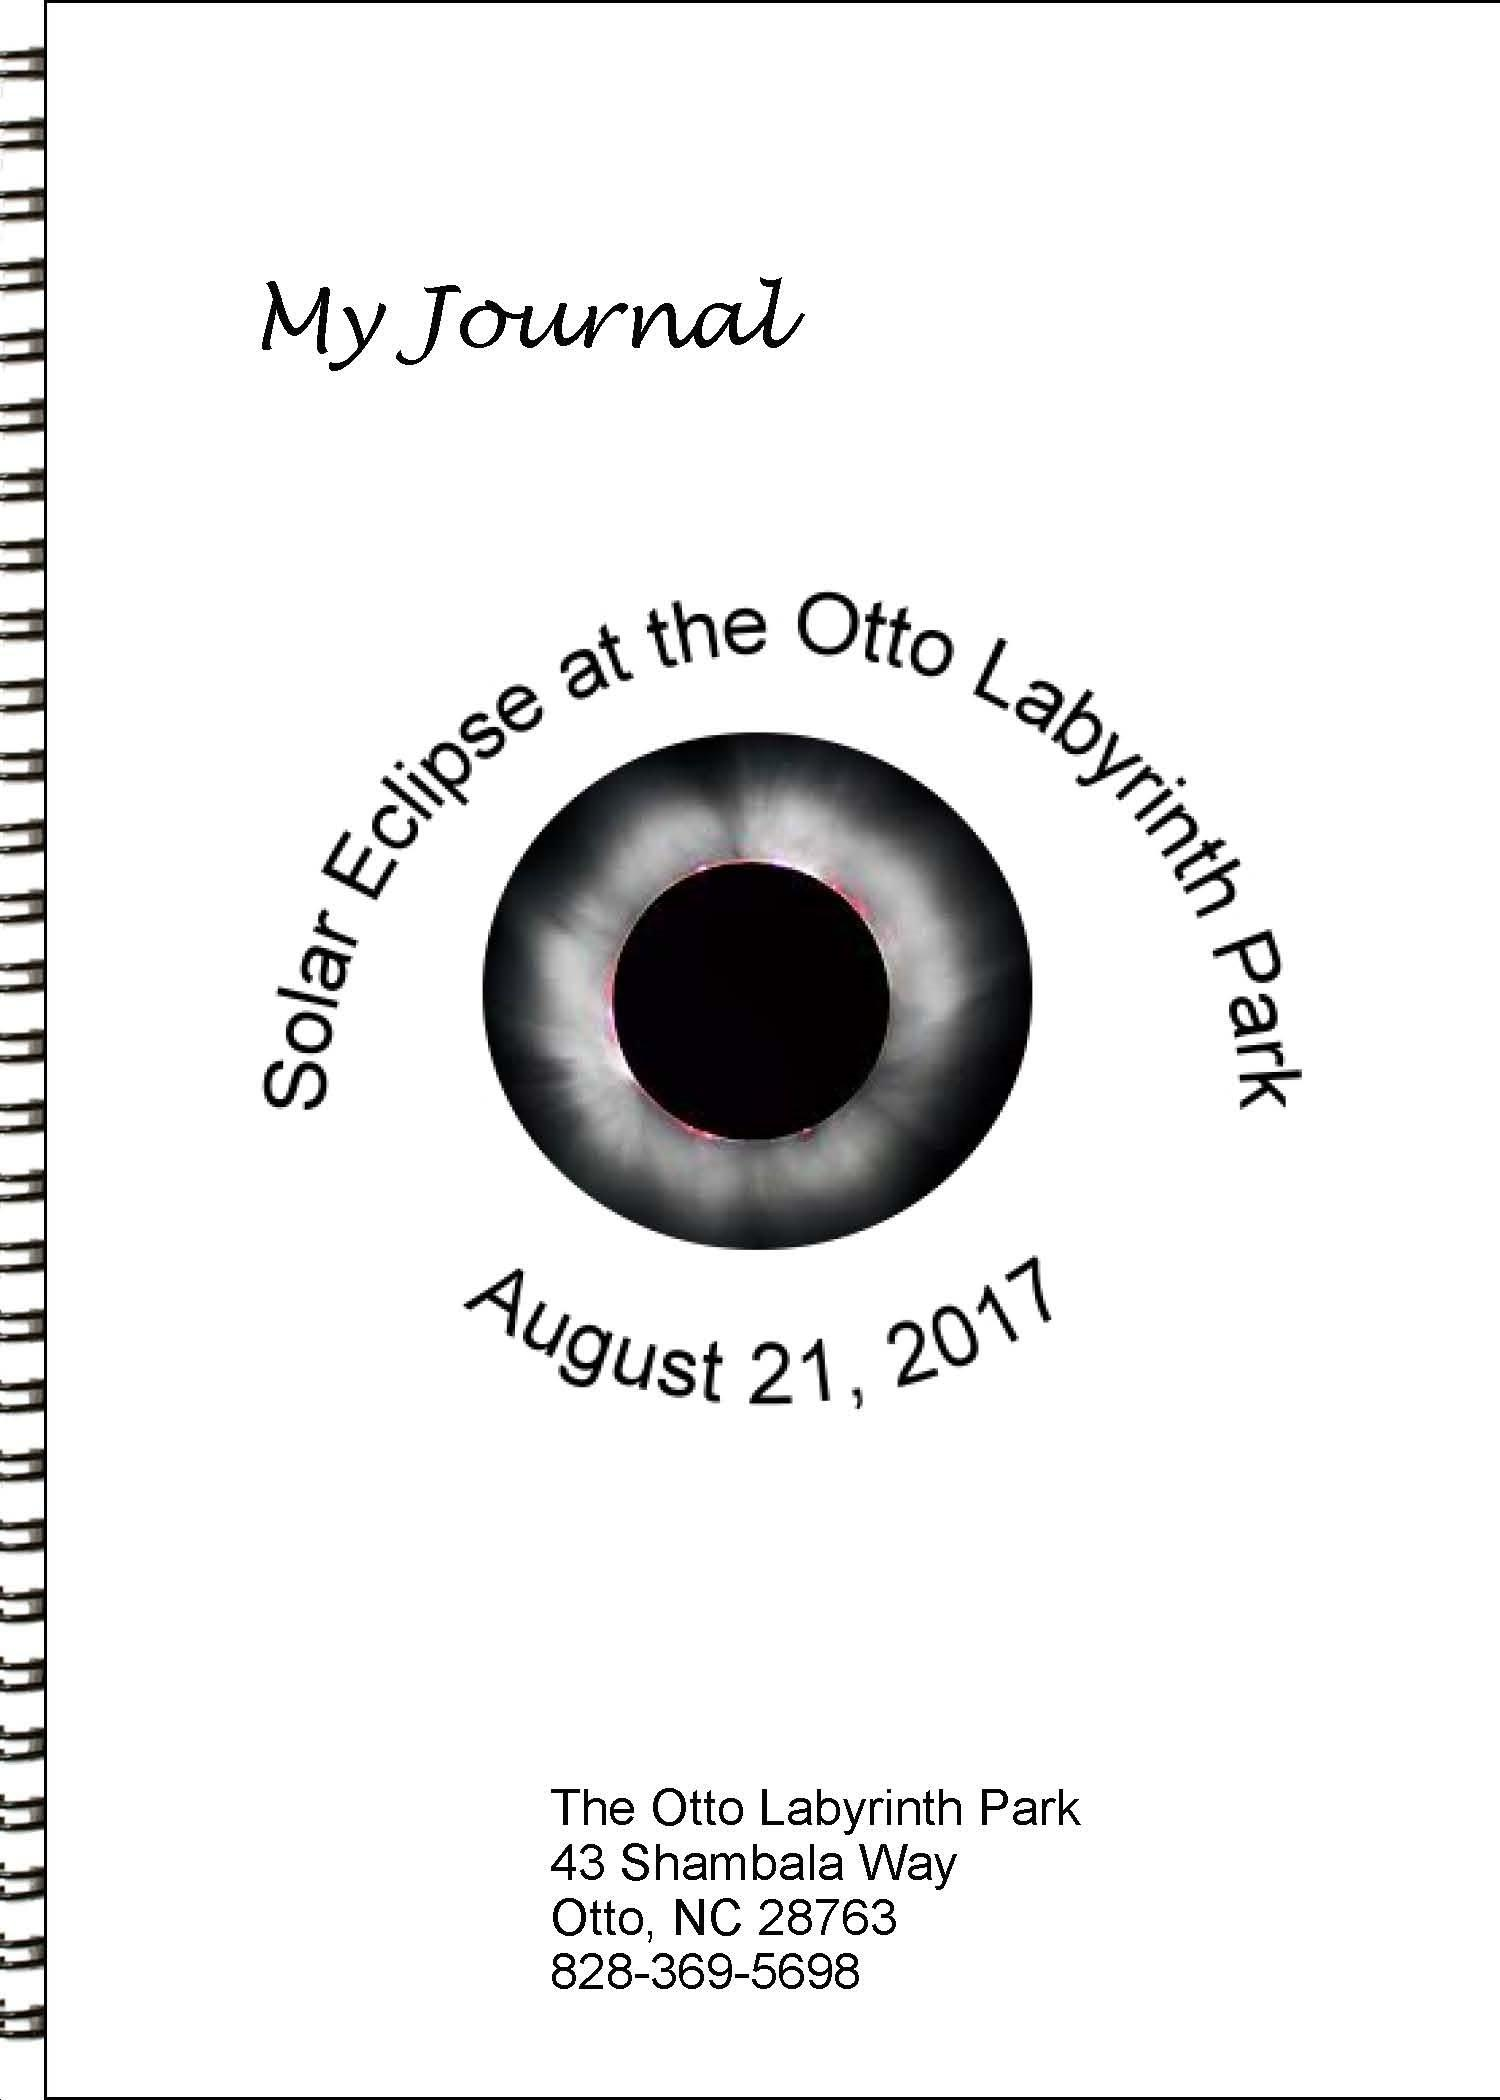 Eclipse Journal for the Otto Labyrinth Park